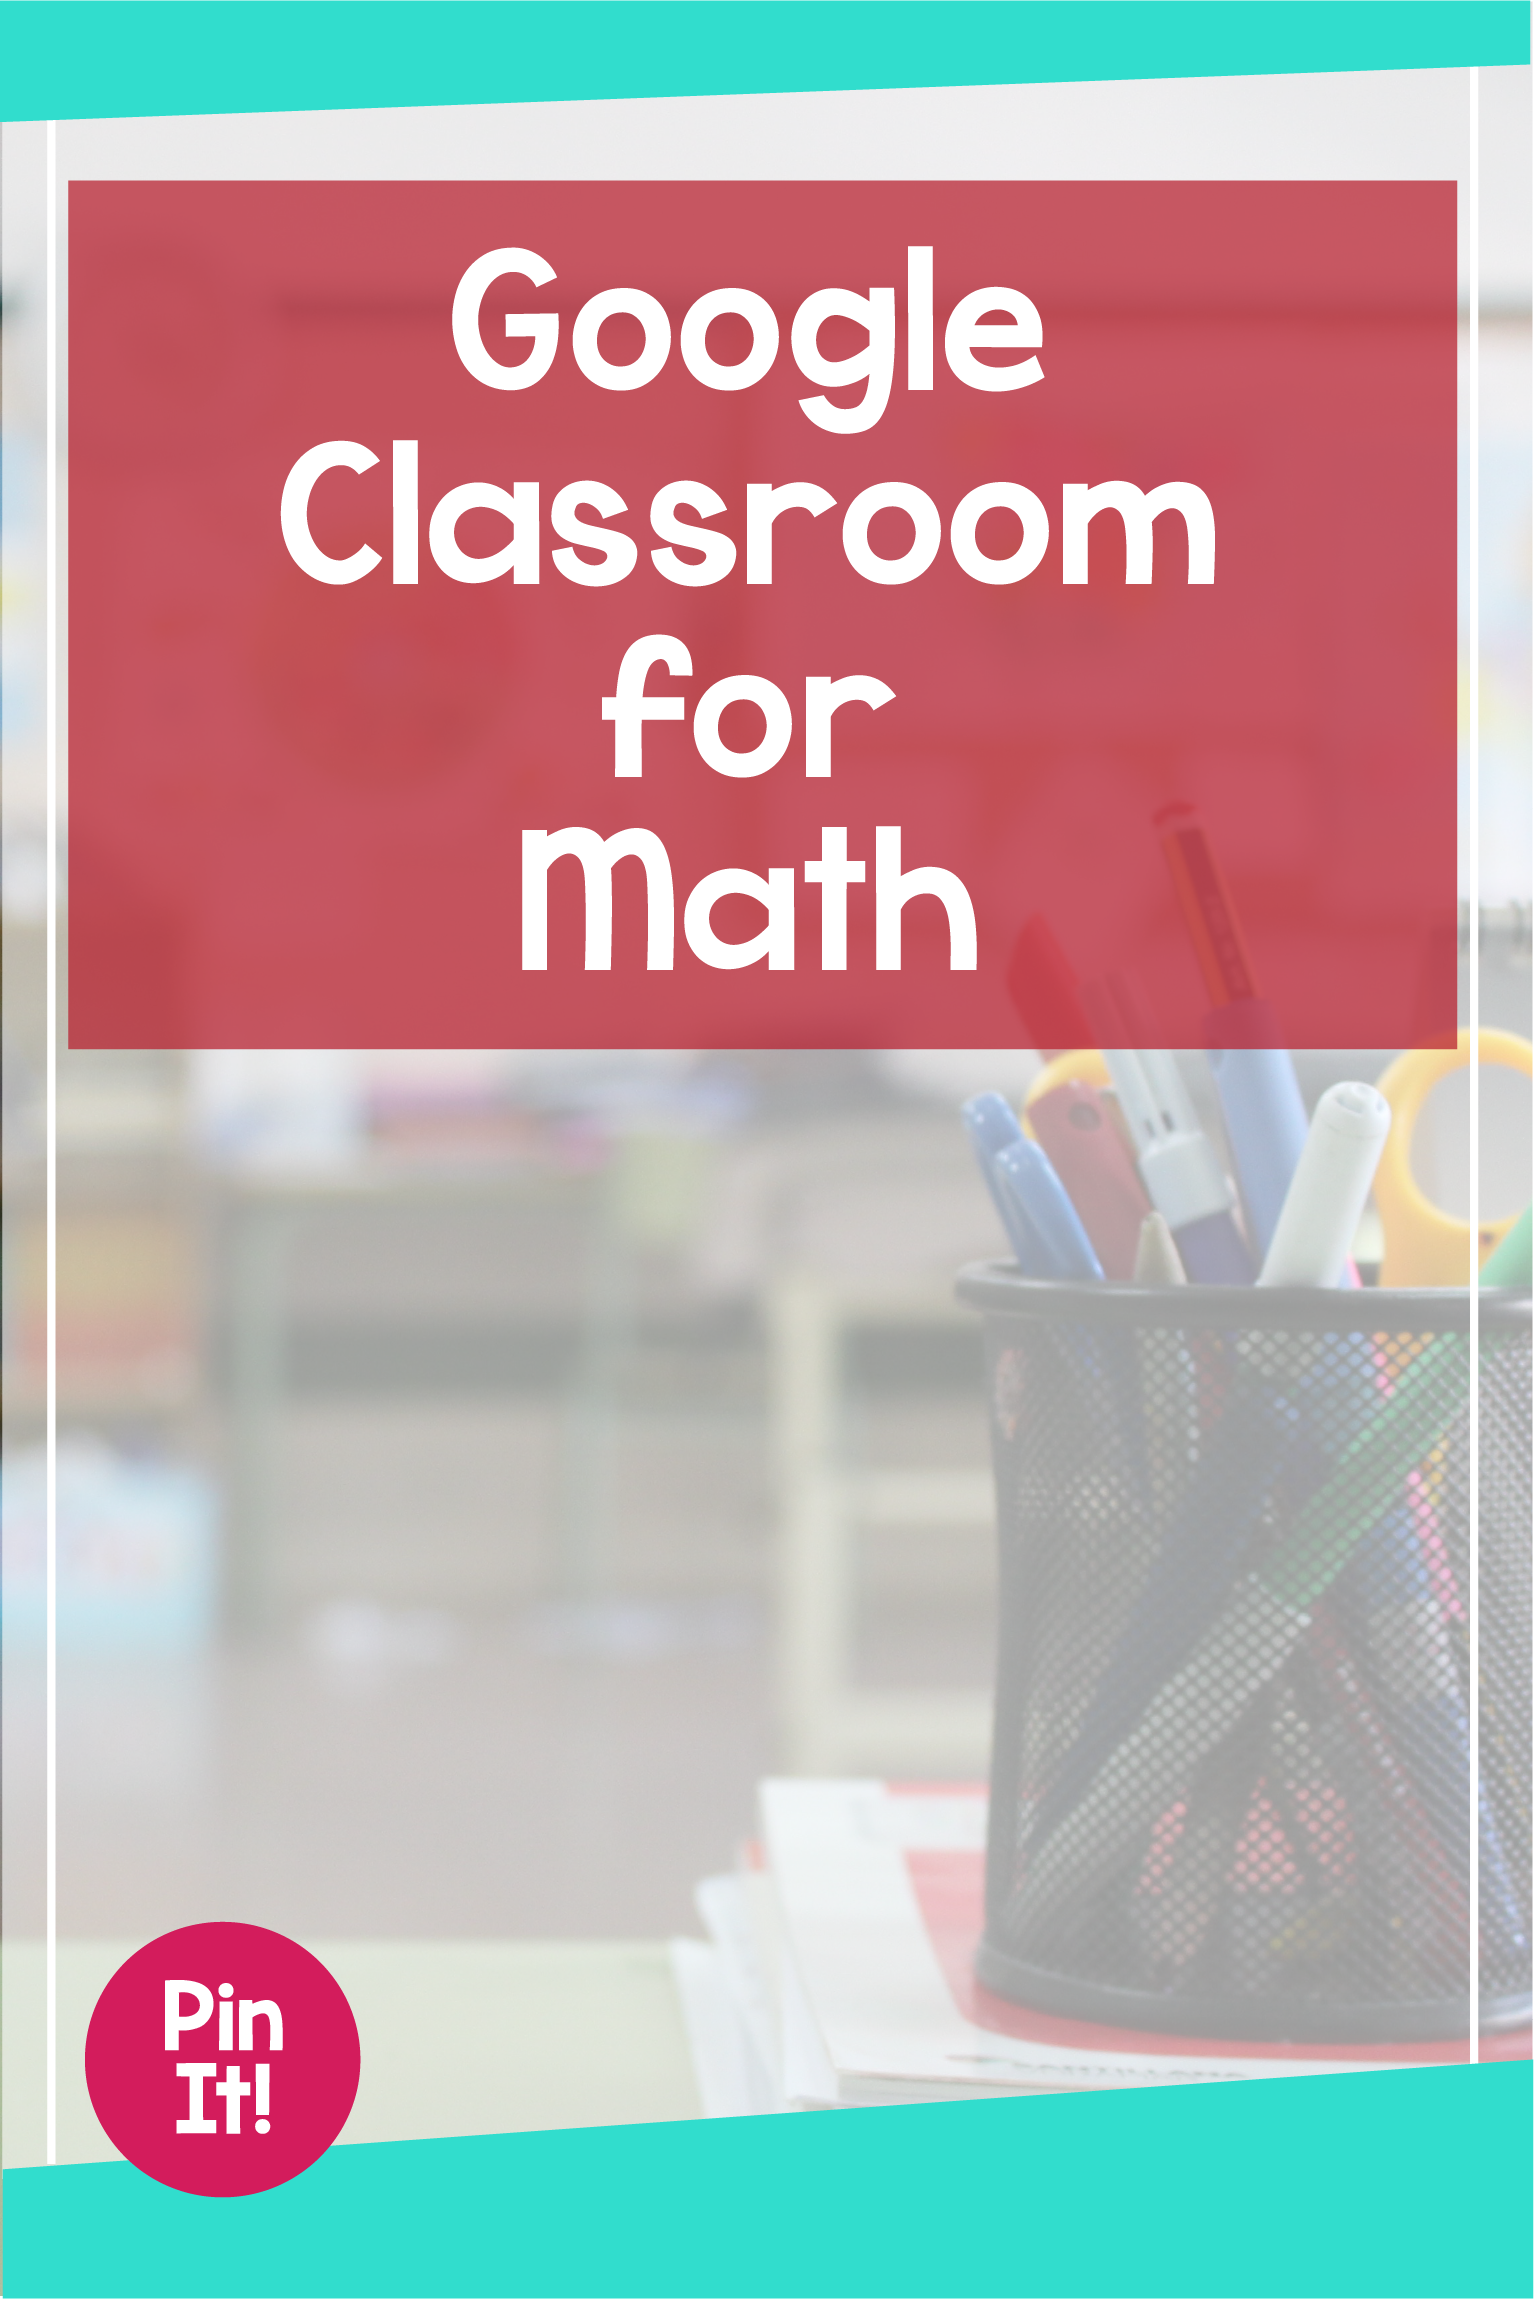 Top 5 Ways to Use Google Classroom for Math Practice   Google ...